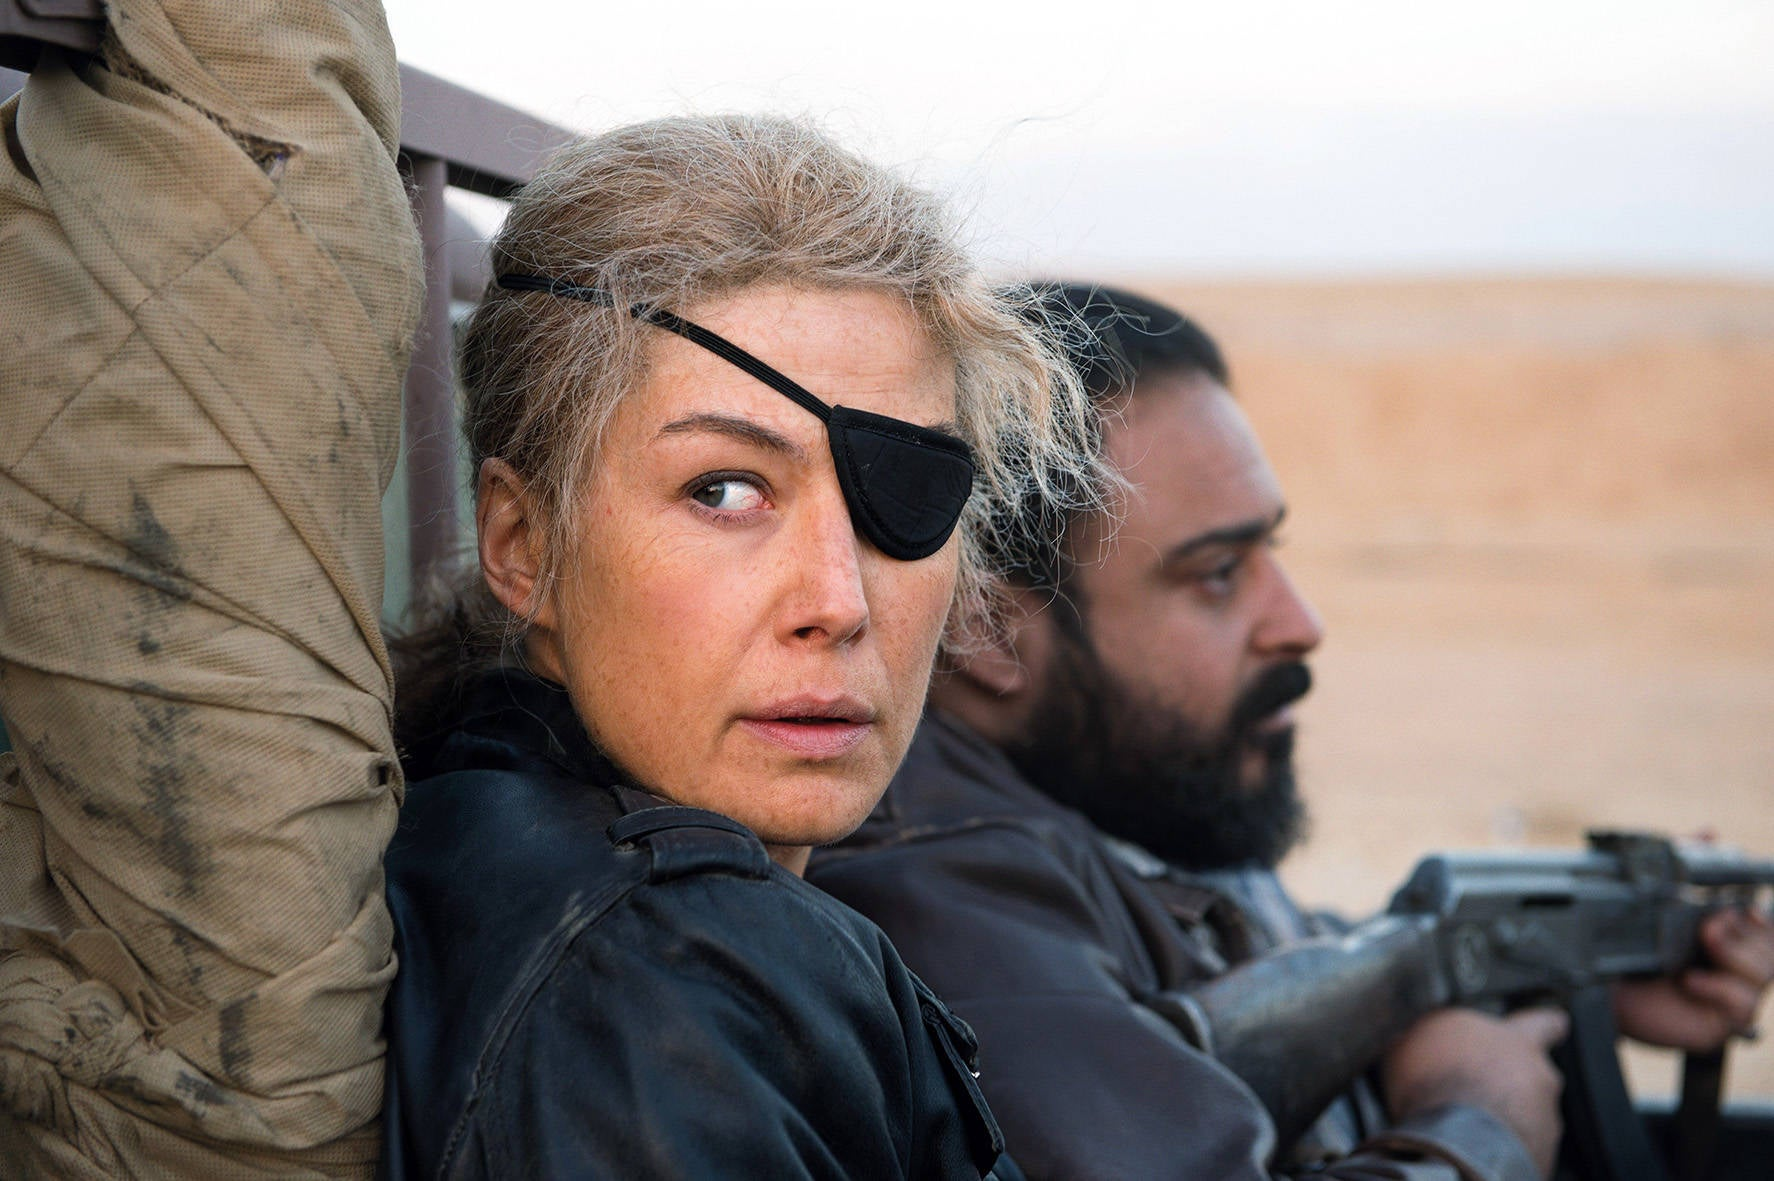 Rosamund Pike gives a force-of-nature performance in A Private War